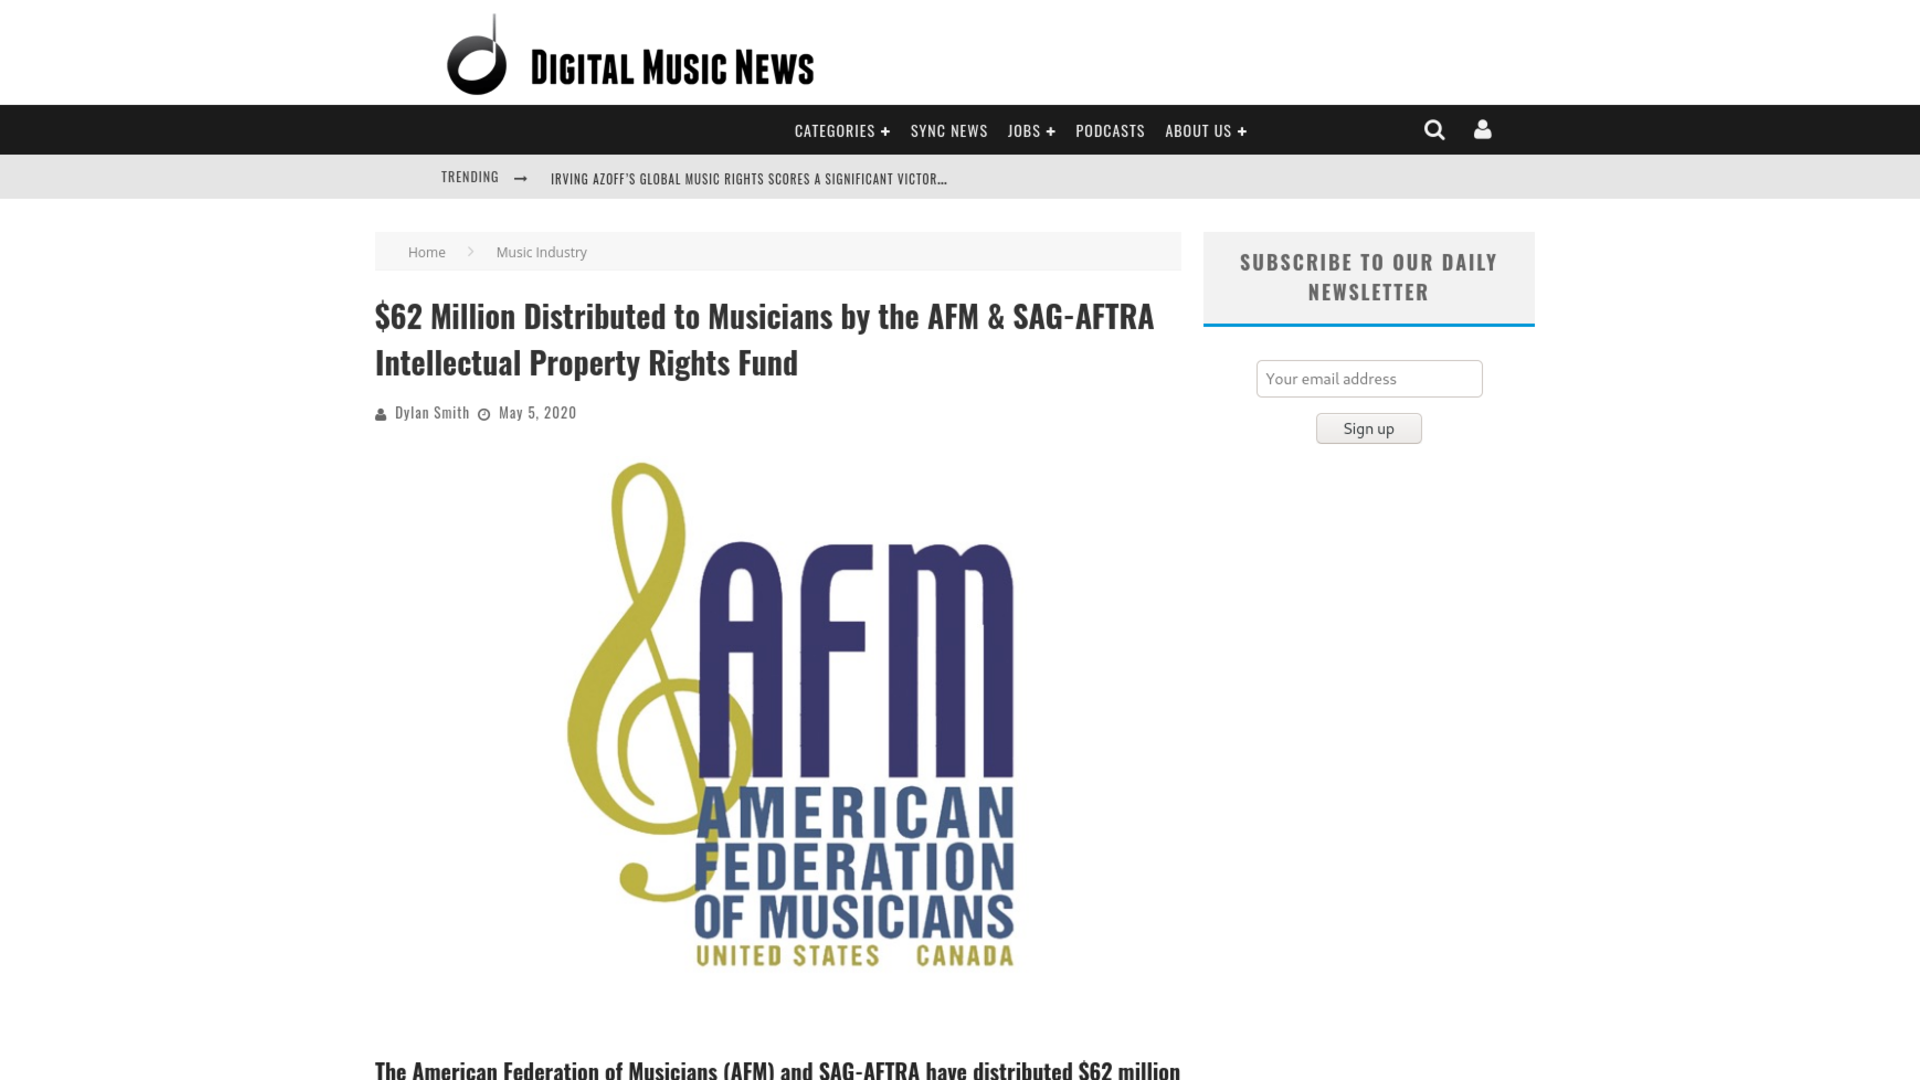 Fairness Rocks News $62 Million Distributed to Musicians by the AFM & SAG-AFTRA Intellectual Property Rights Fund